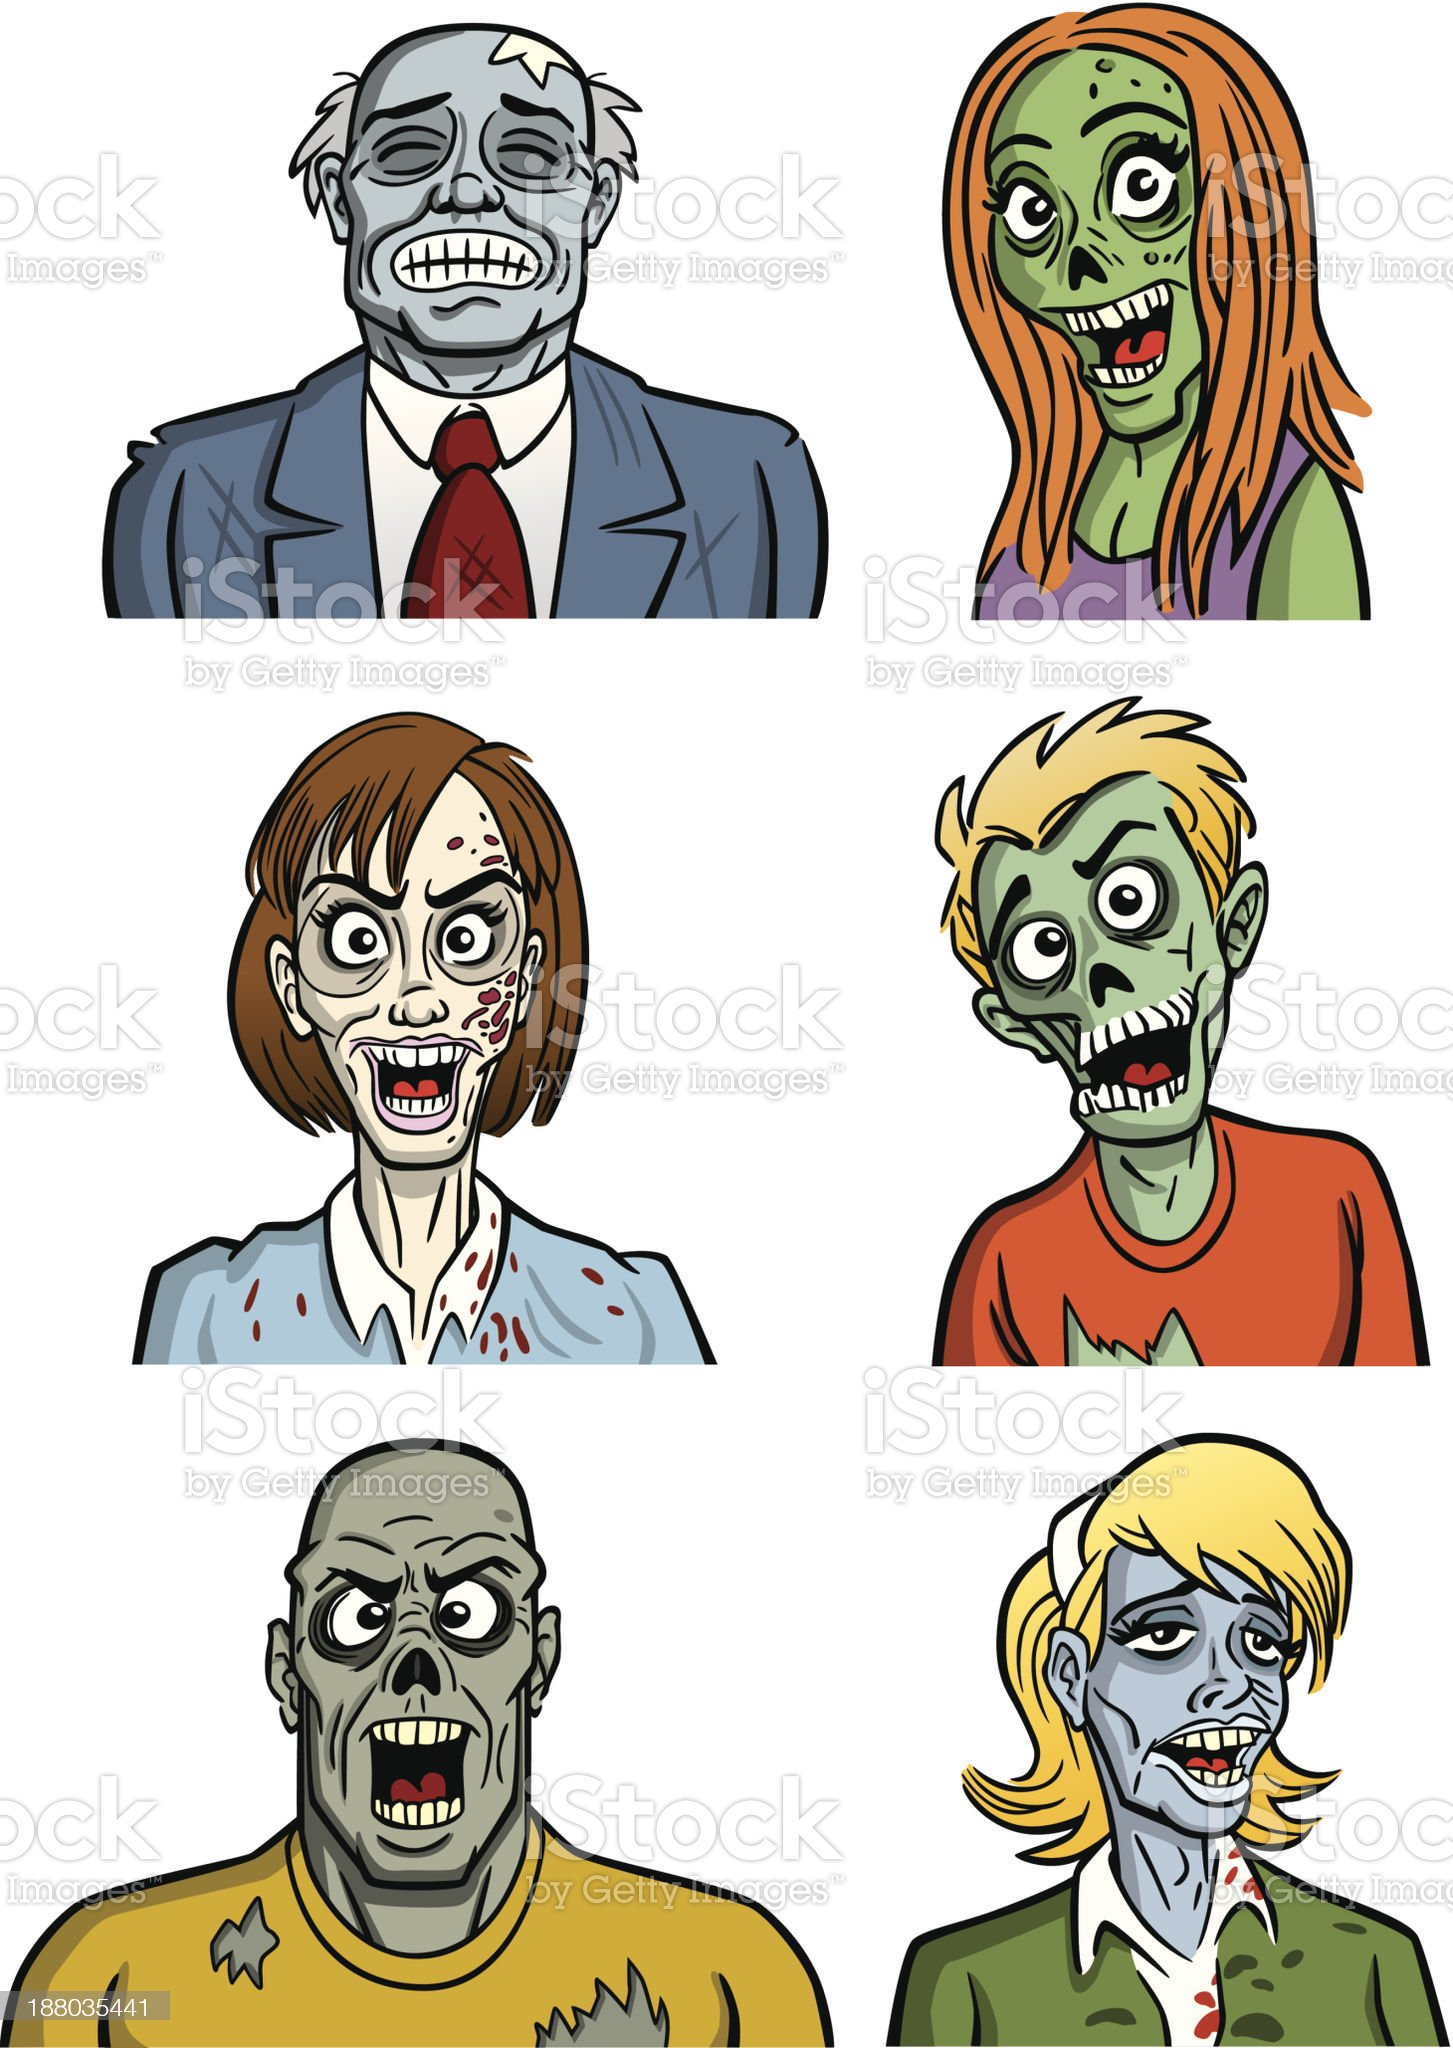 Group of Zombies royalty-free stock vector art